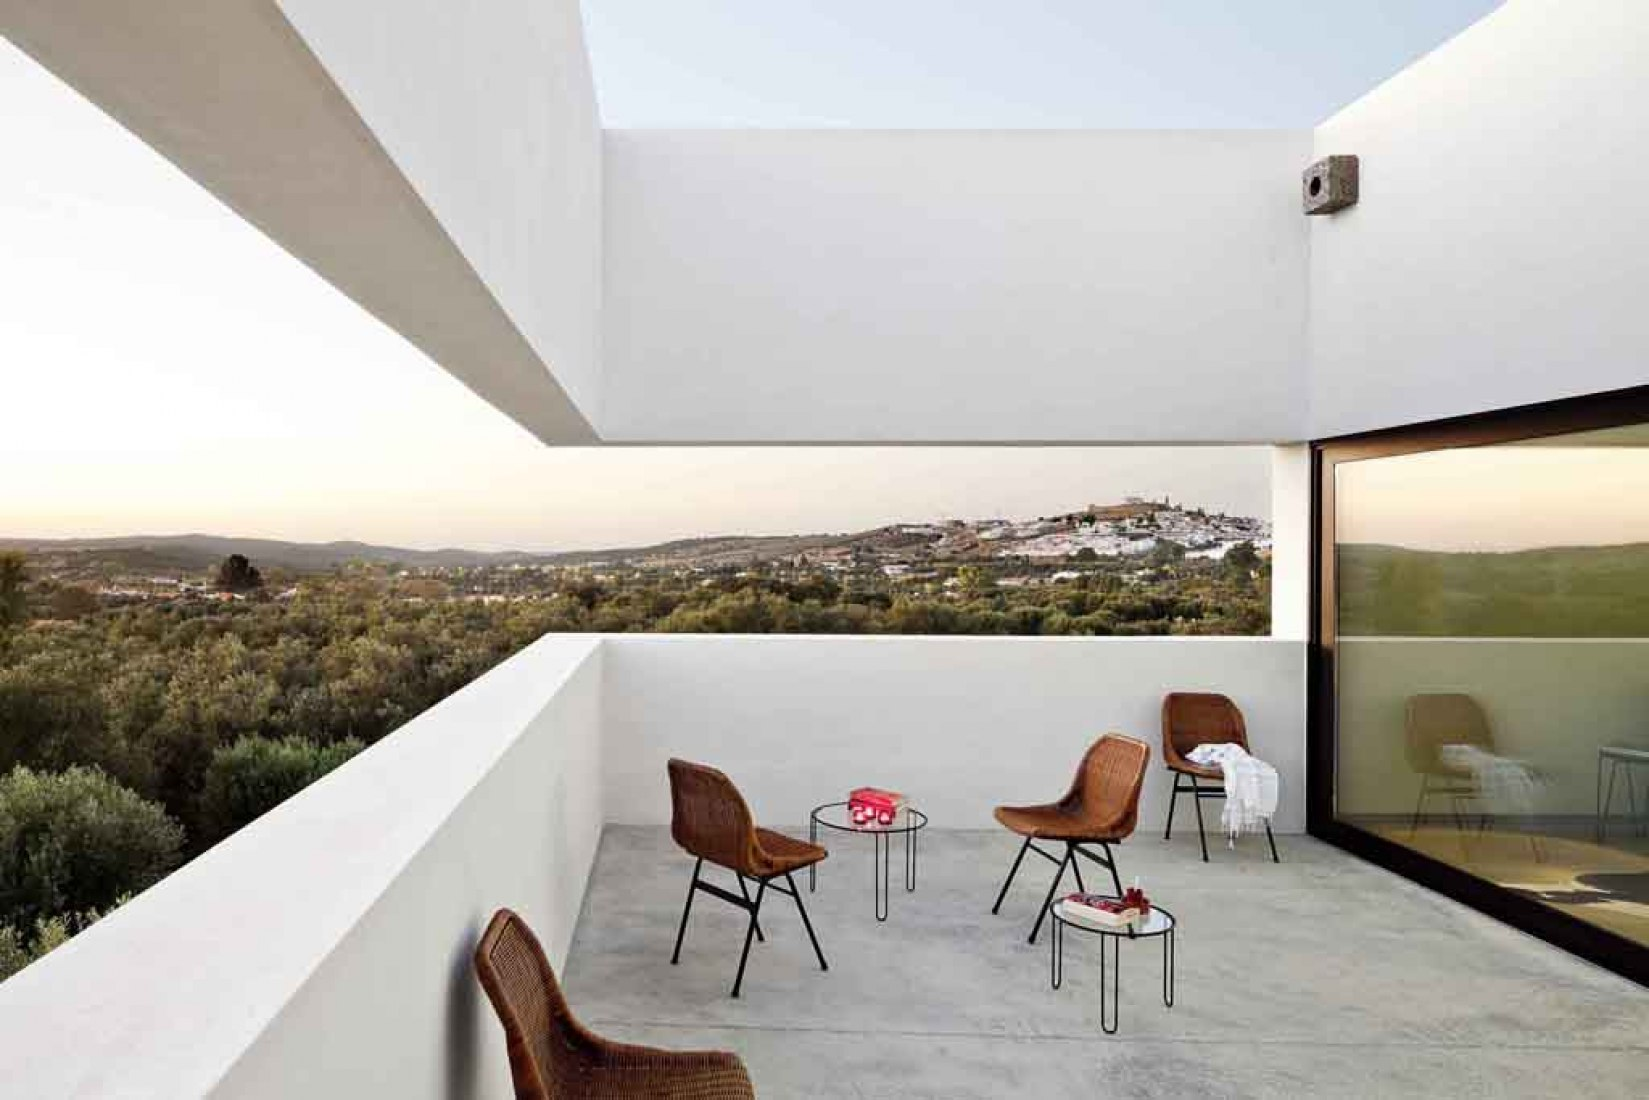 Landscape from terrace. Guestroom on the upper level. Villa Extramuros. by Vora Arquitectura. Photography © courtesy of Adrià Goula.